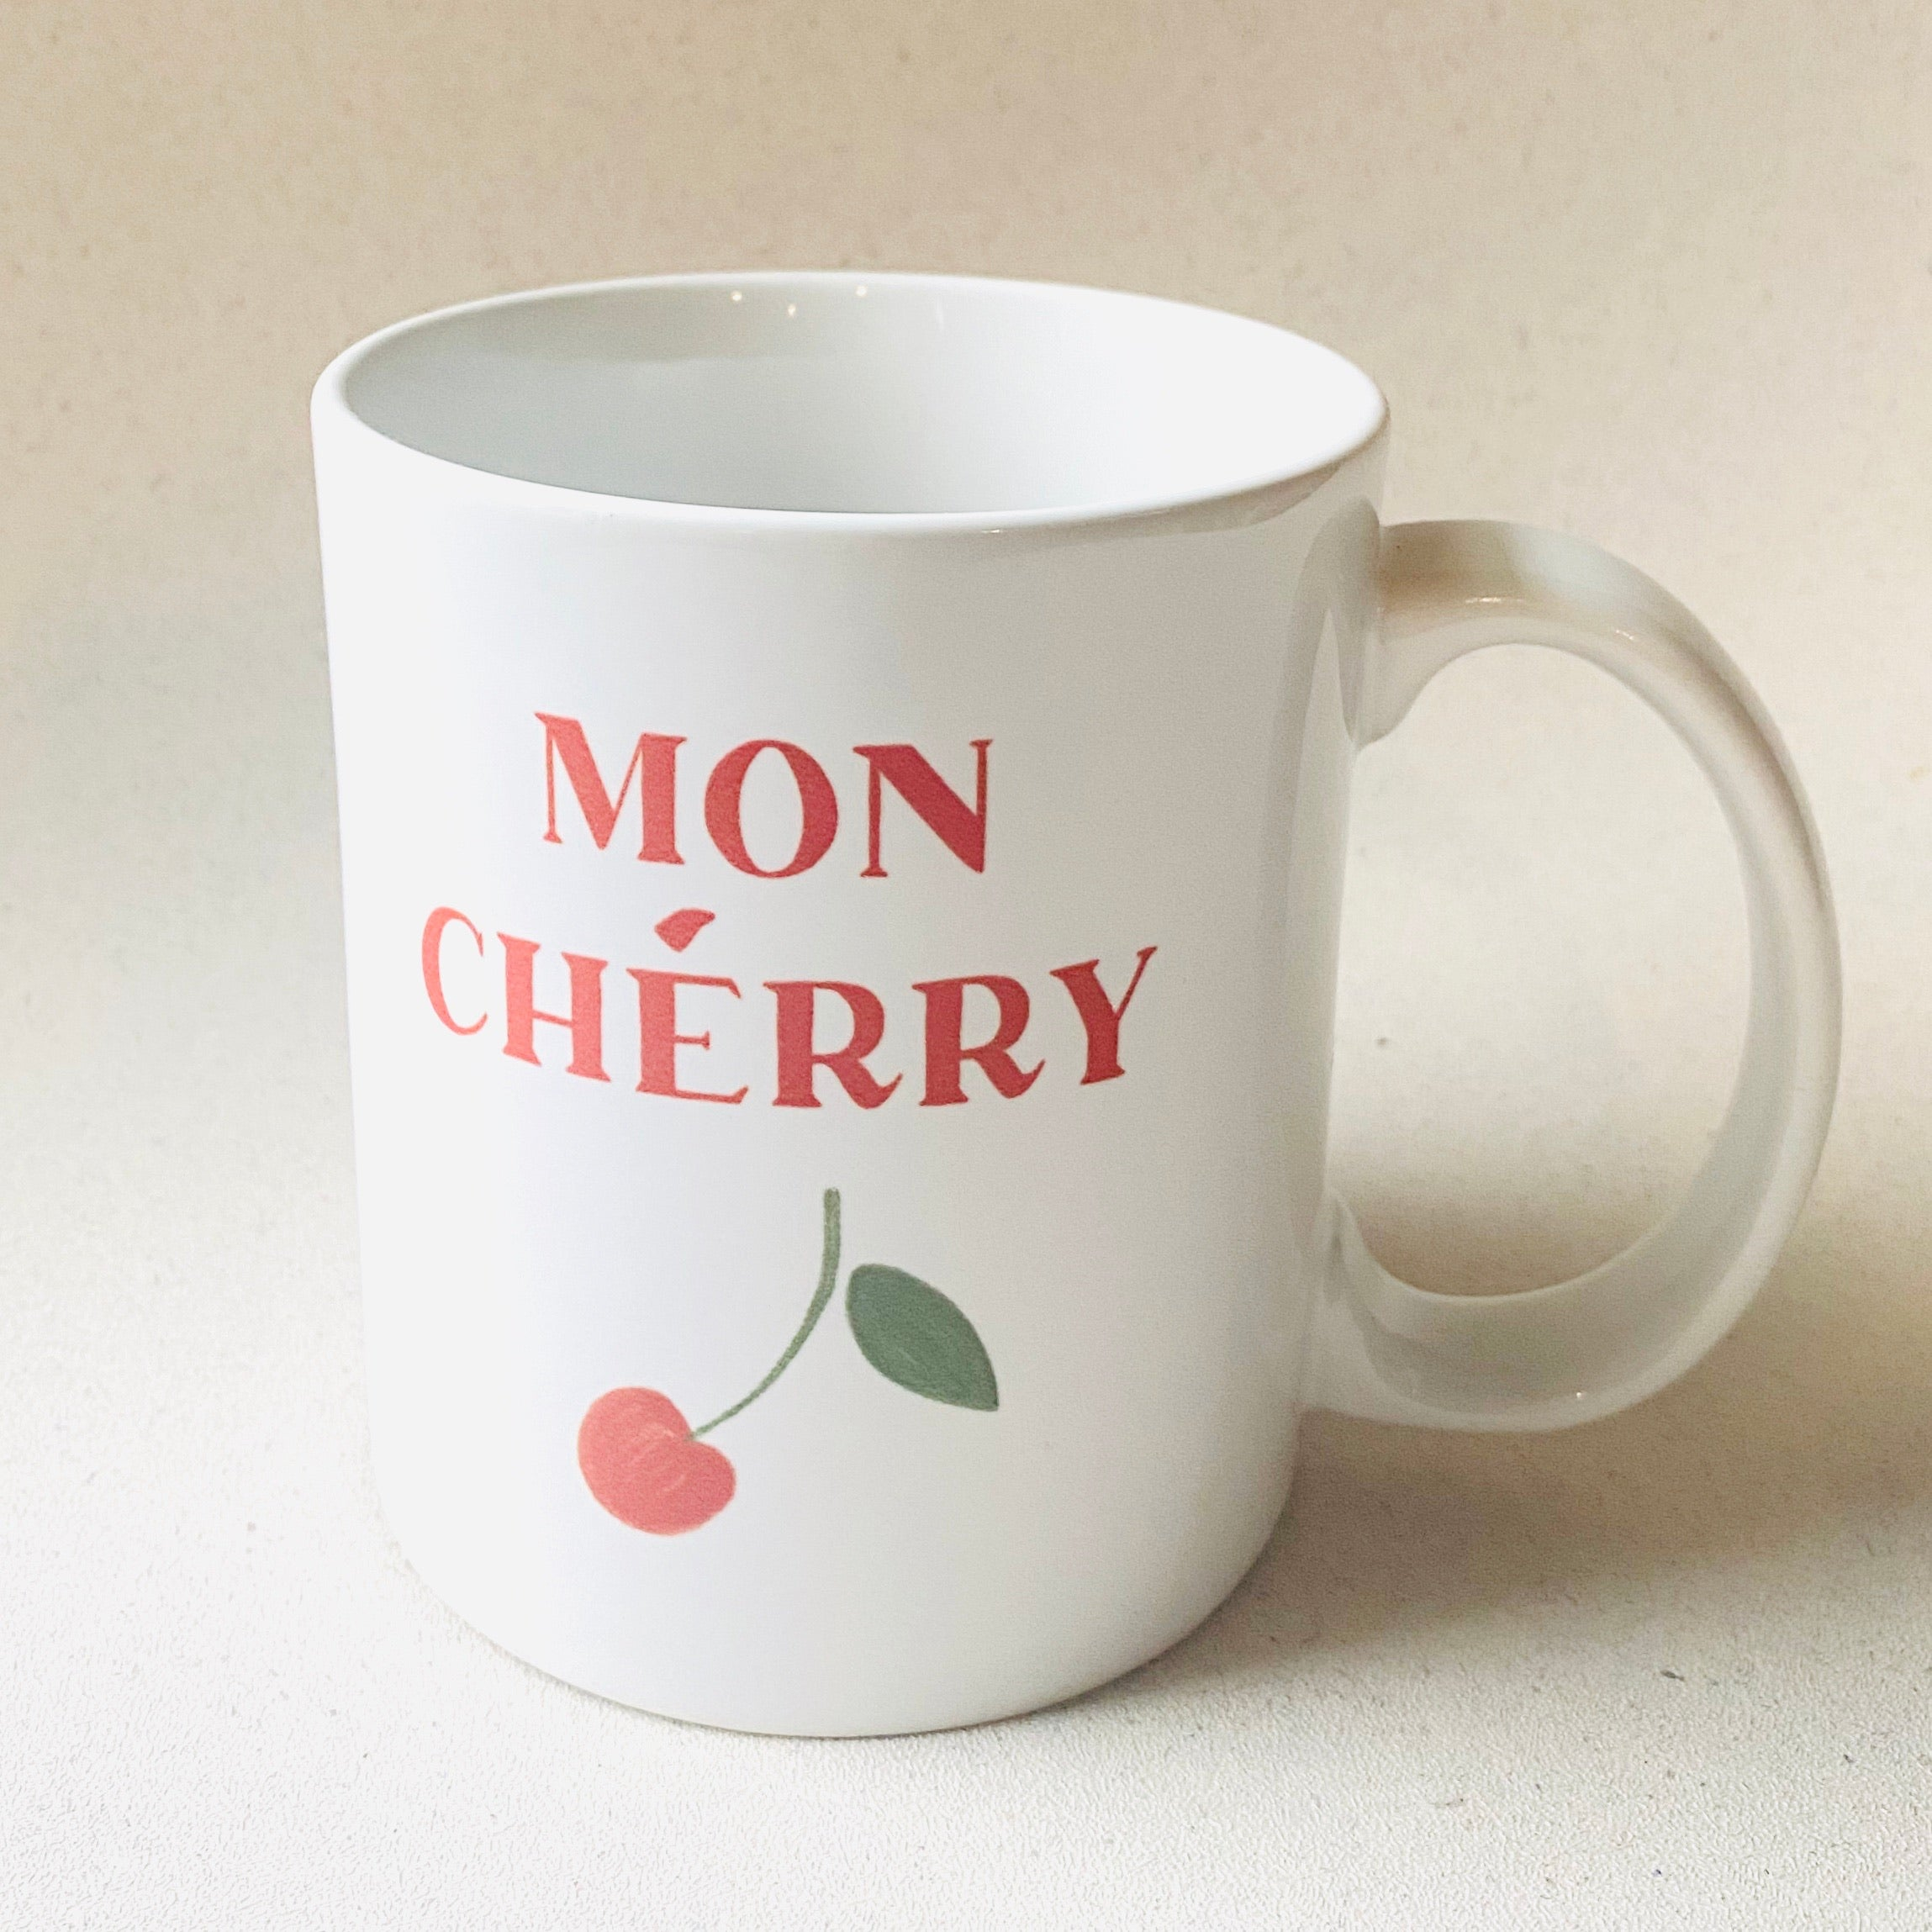 Mòn Cherry Ceramic Mug